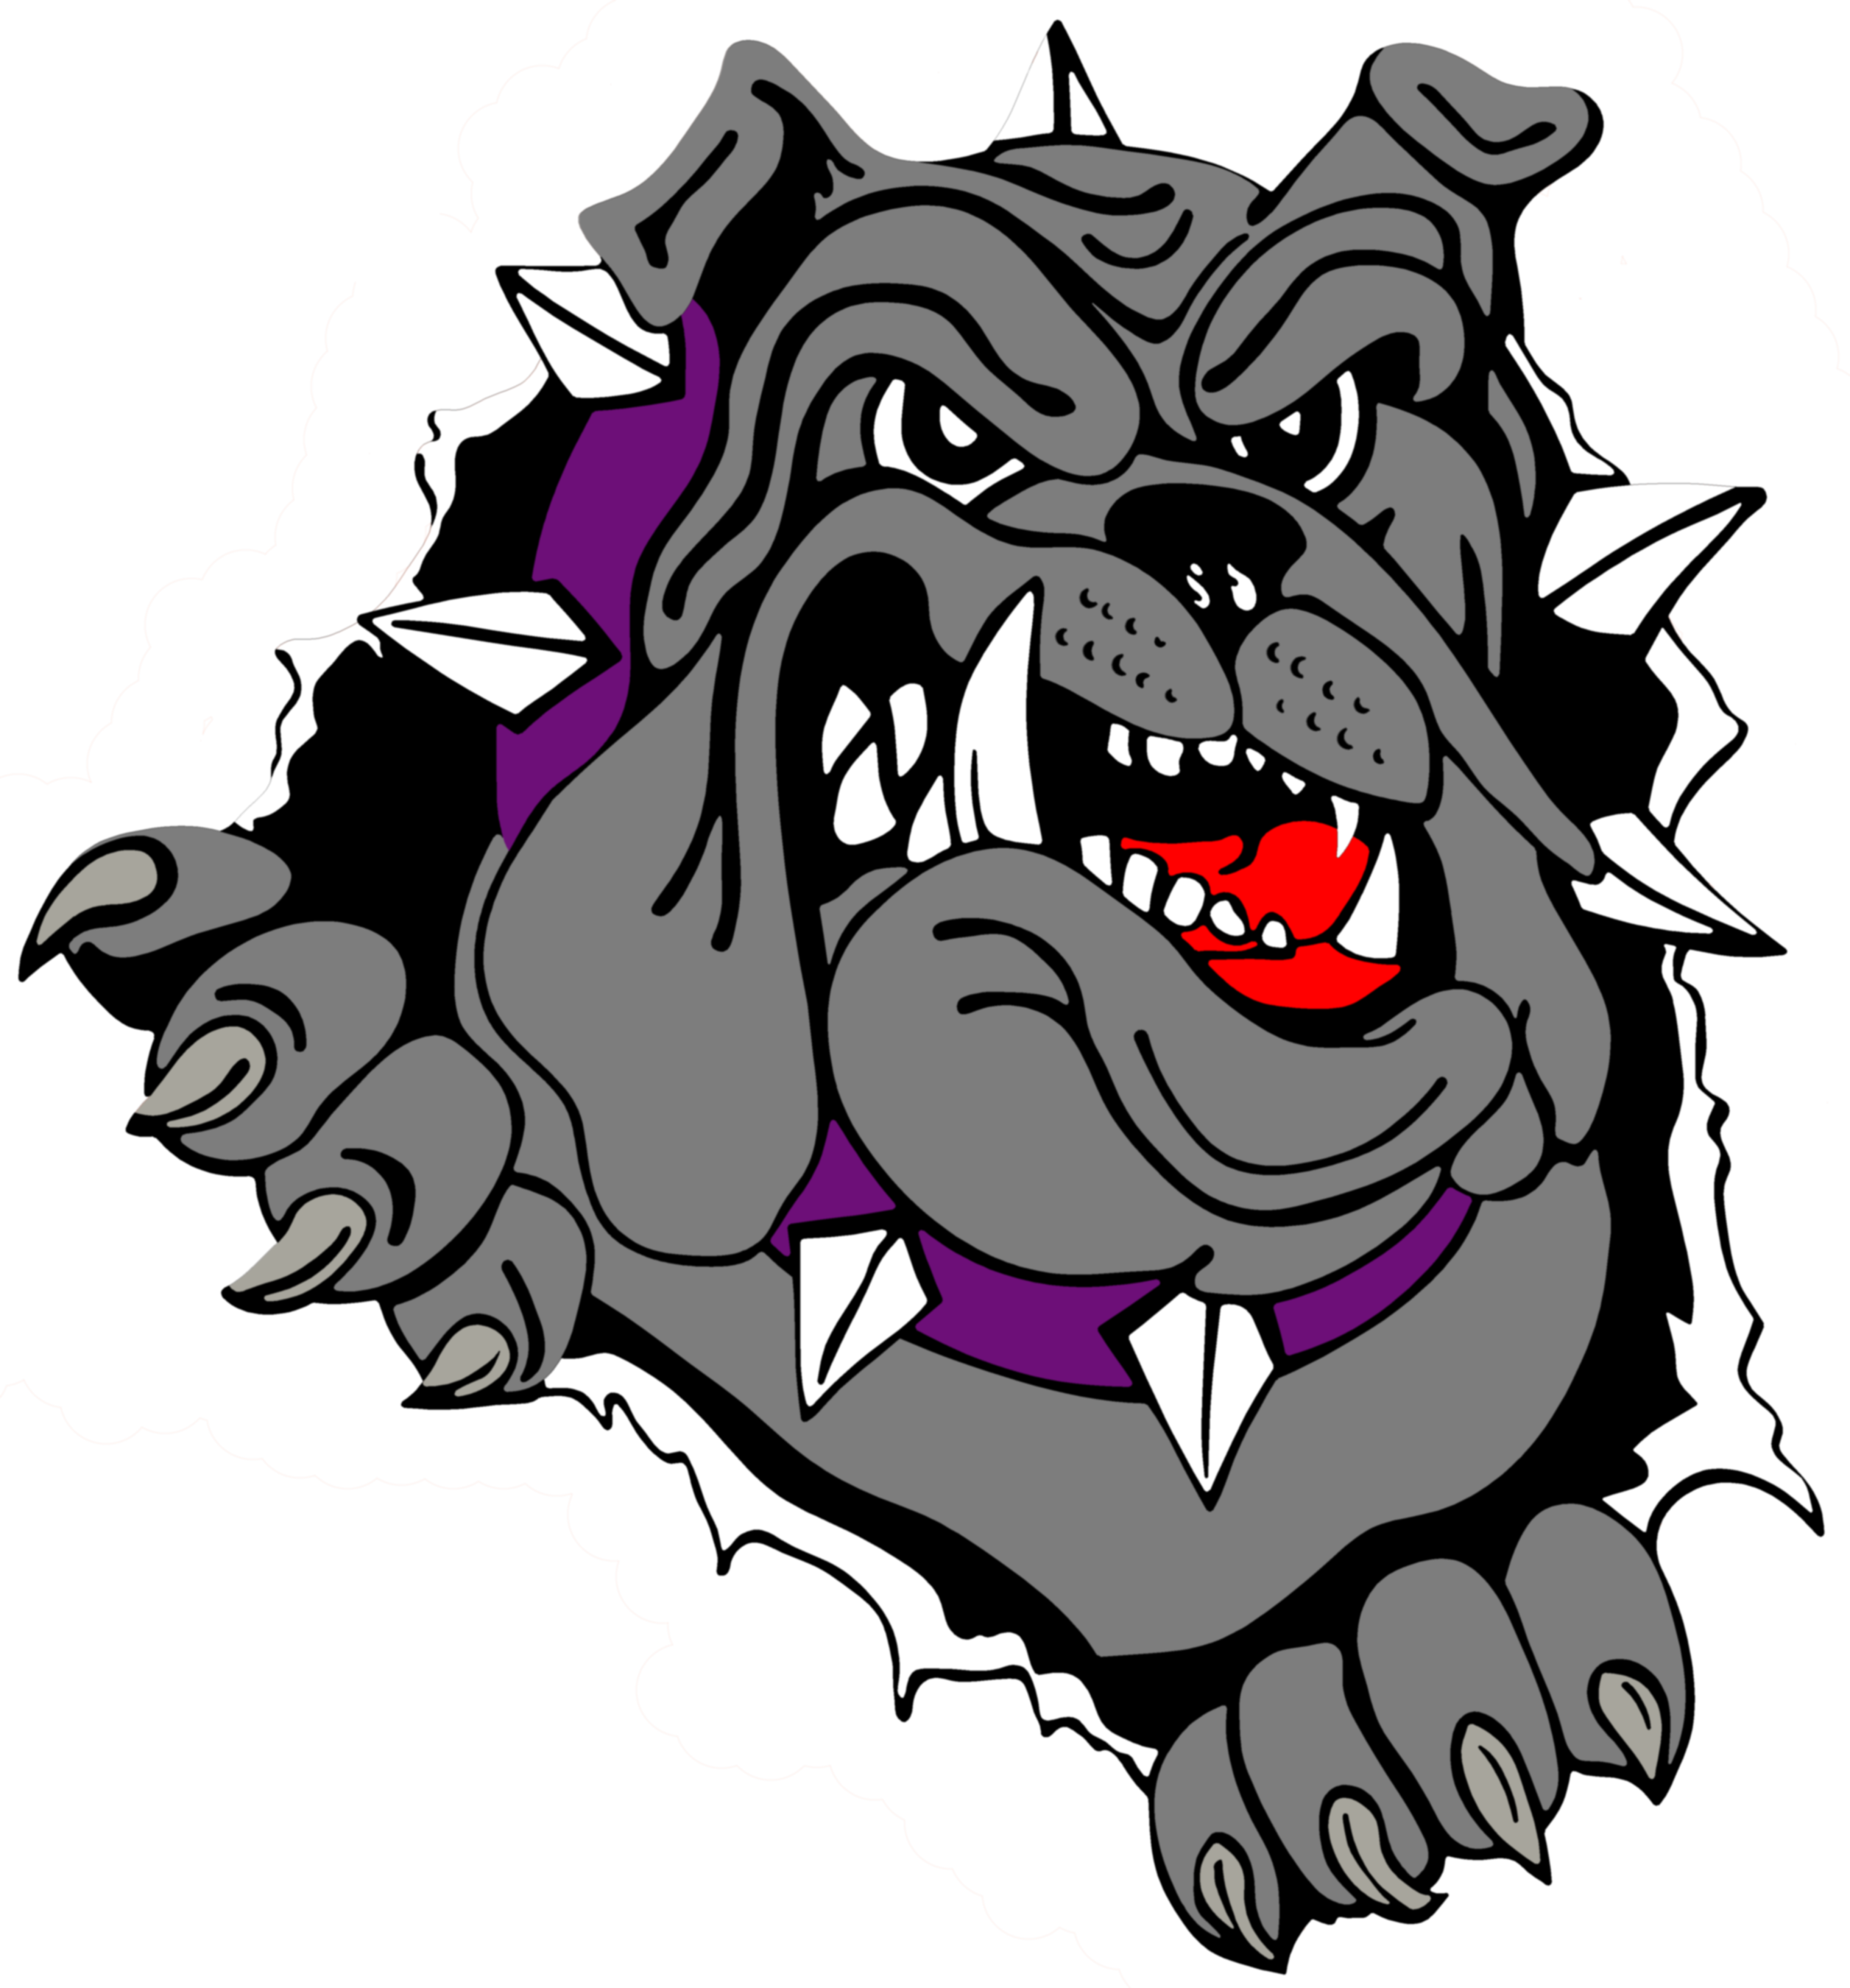 Does the with favorite. Bulldog face png image royalty free